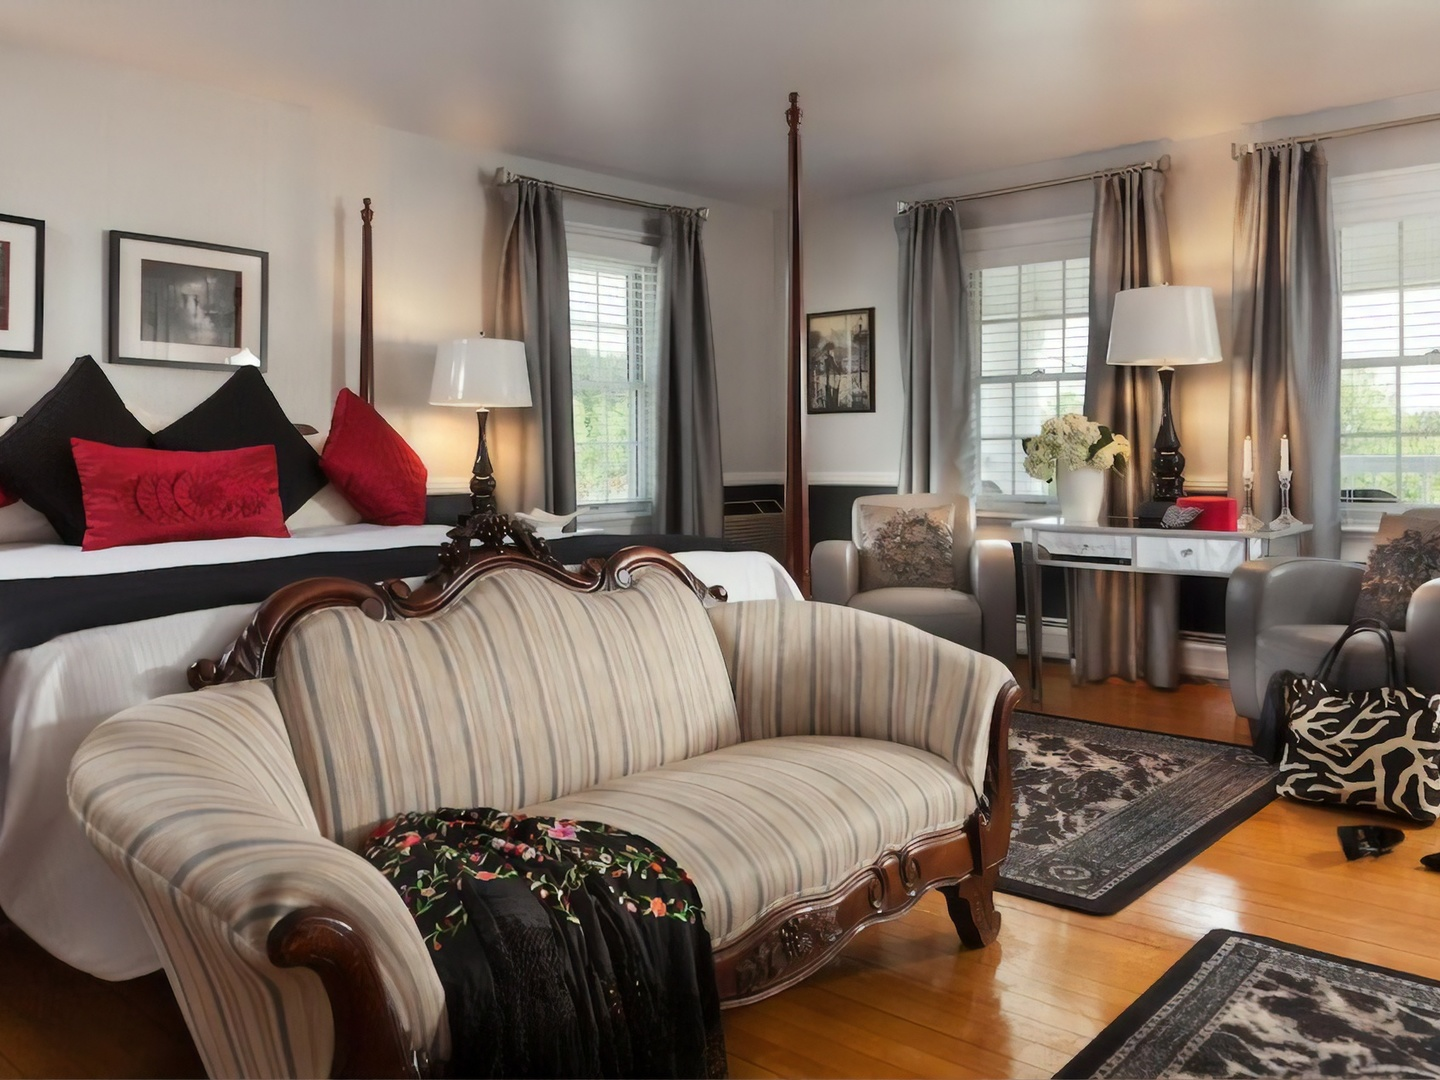 A living room filled with furniture and a large window at Rabbit Hill Inn.